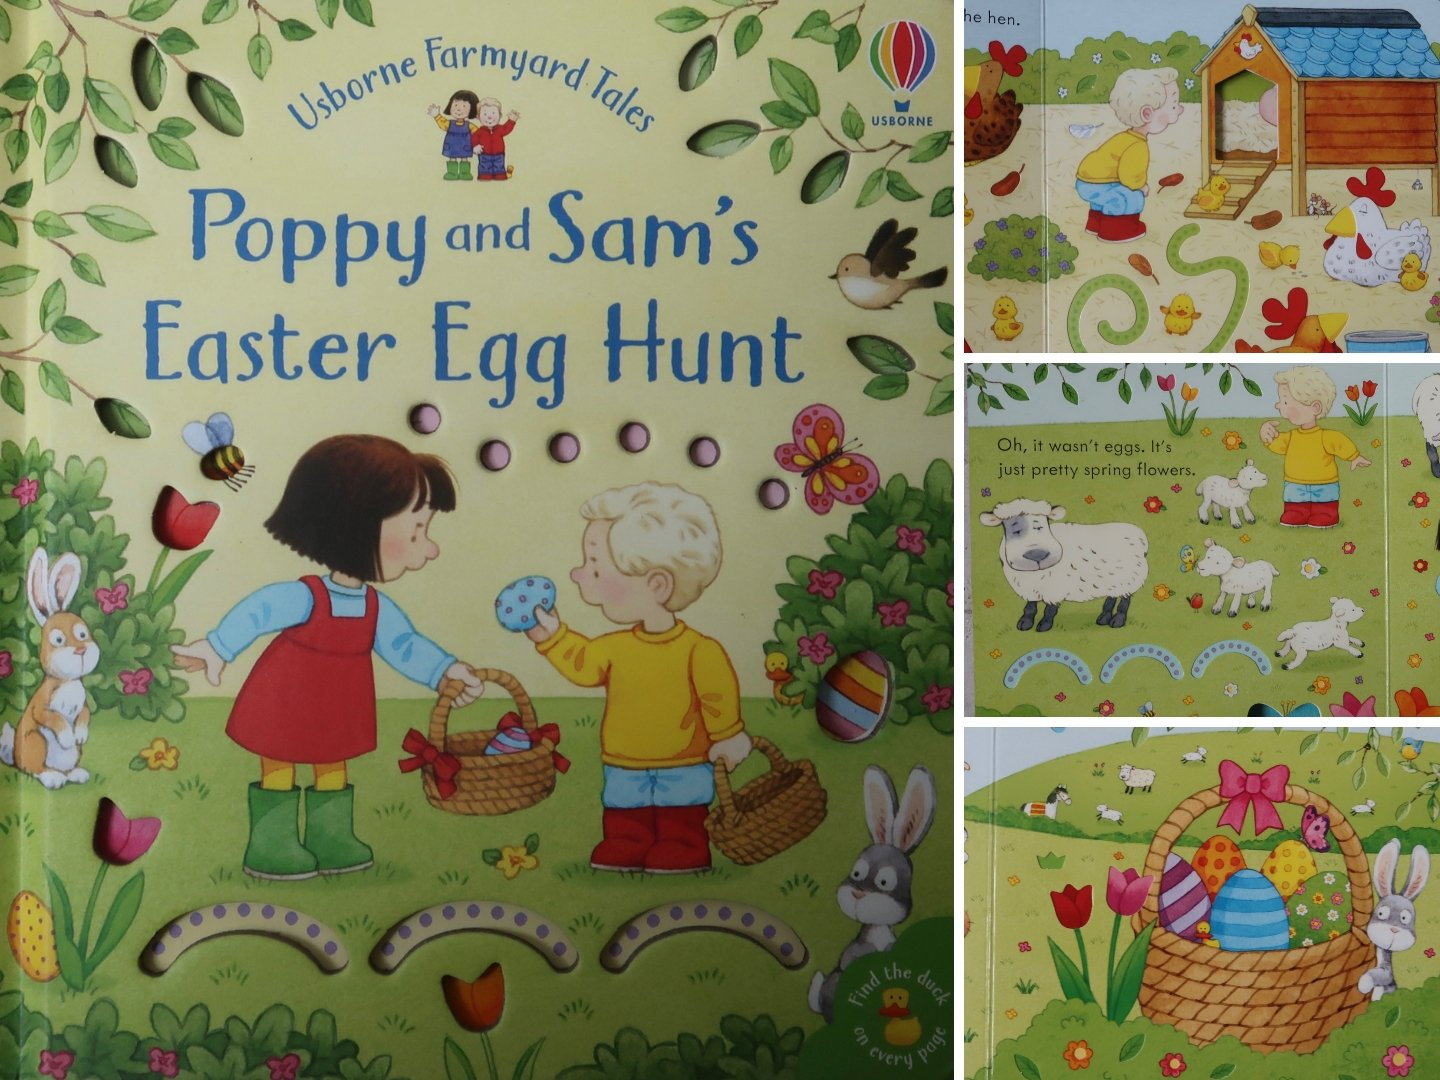 Poppy and Sam's Easter Egg Hunt - Easy Easter egg decorating activity.